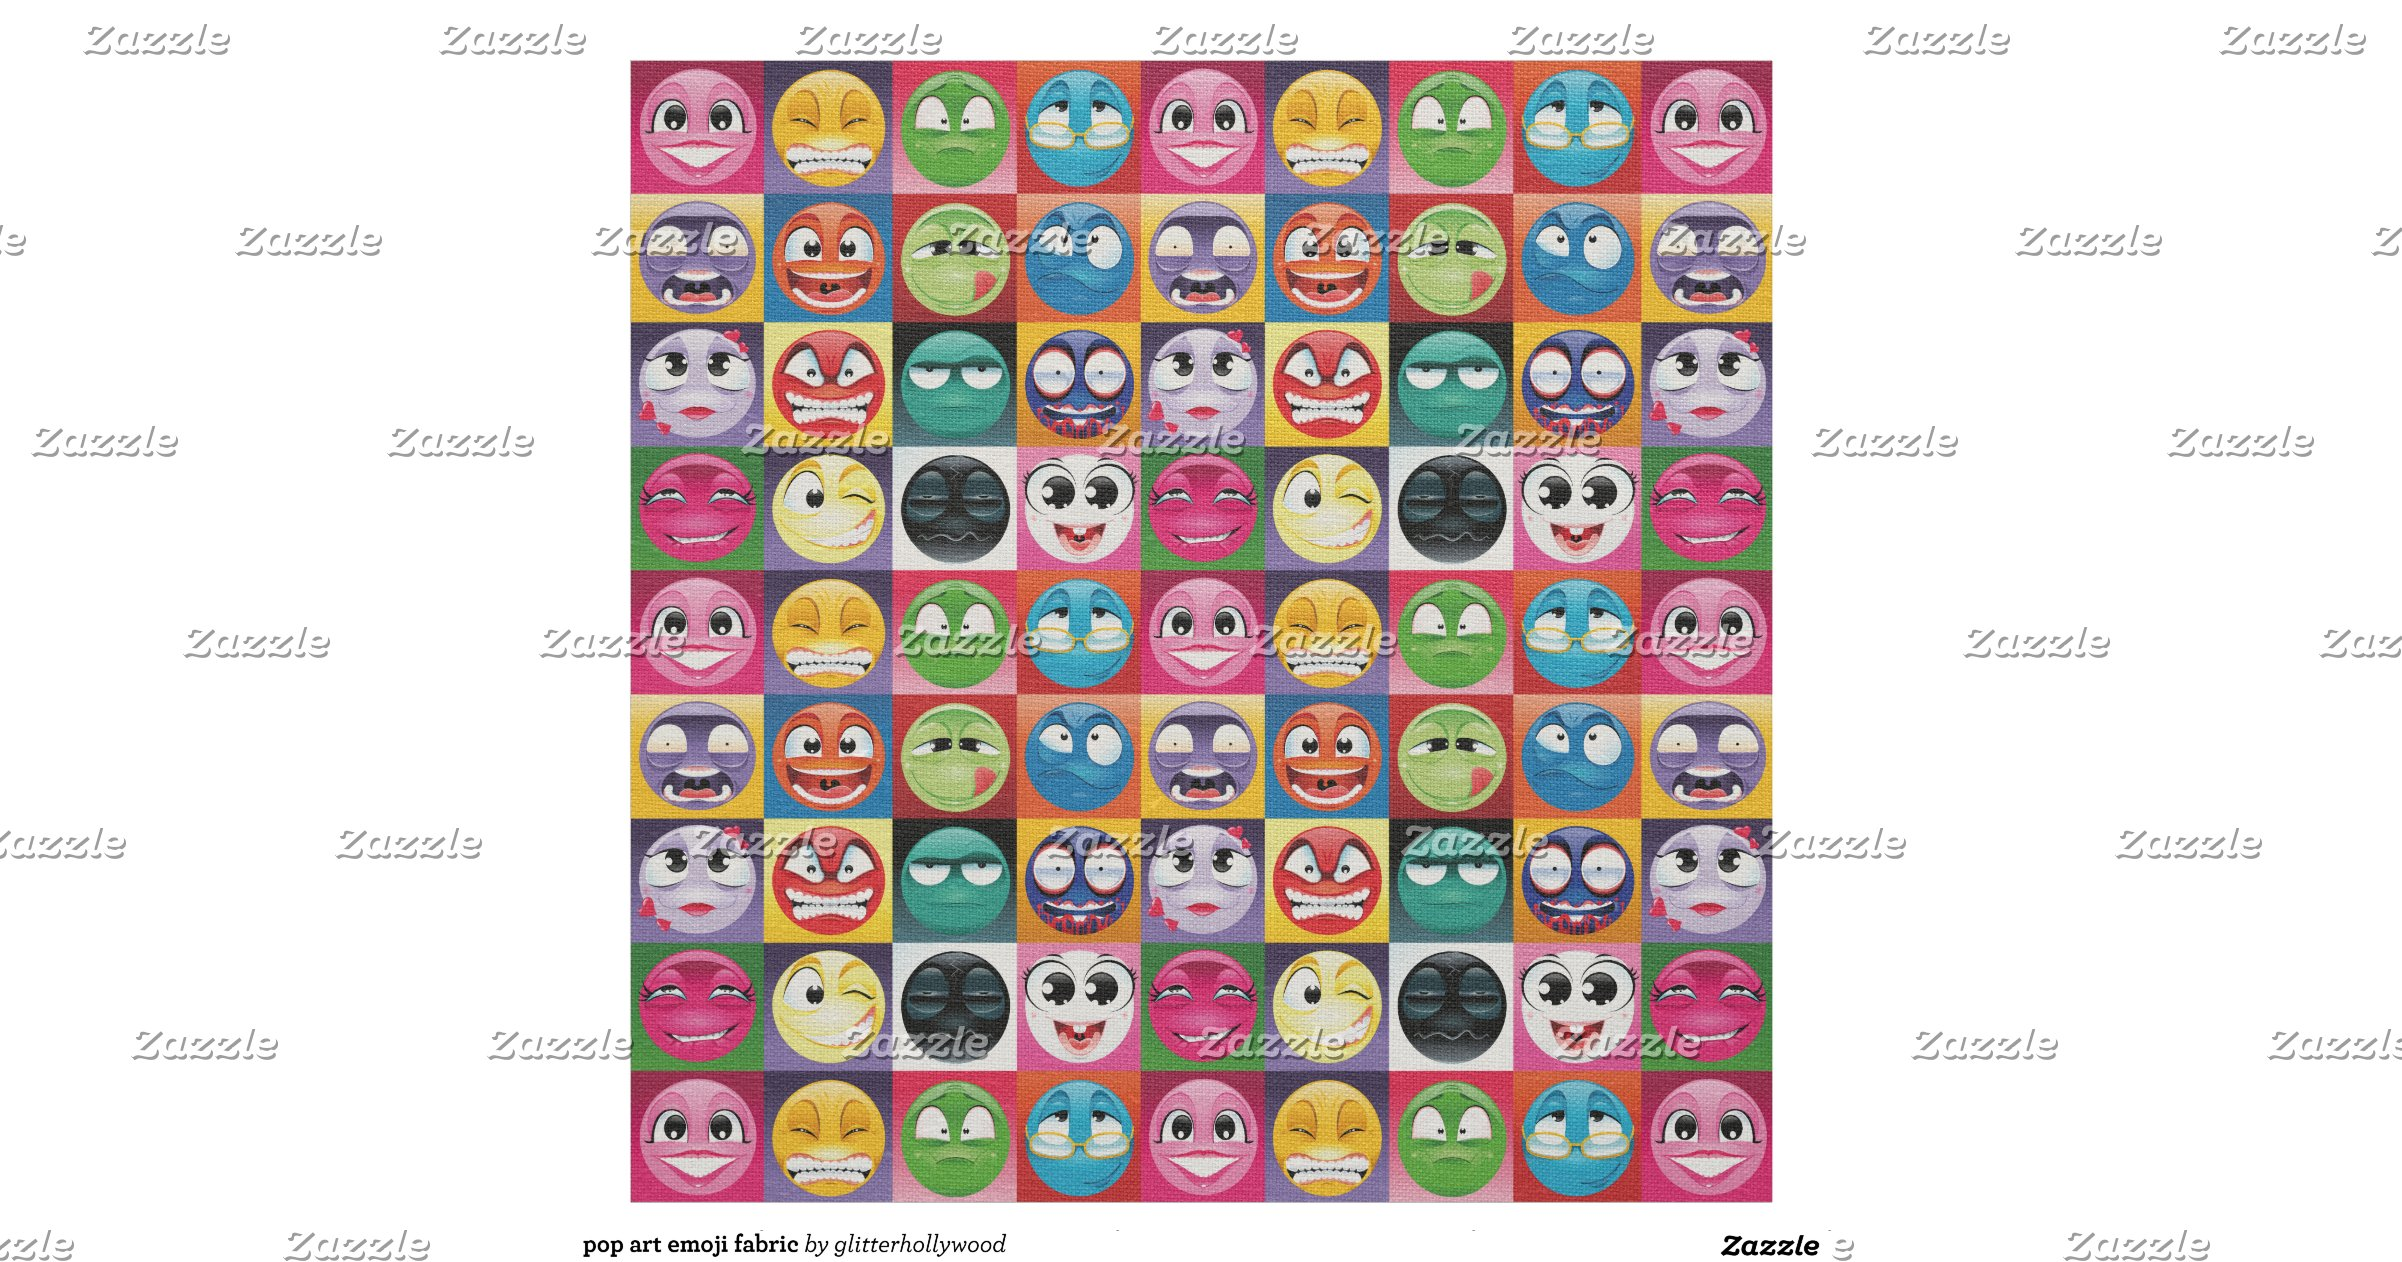 Pop art emoji fabric rccc5dd03aa224665a0904d1f1a4c85c0 zl6qd for Emoji material by the yard